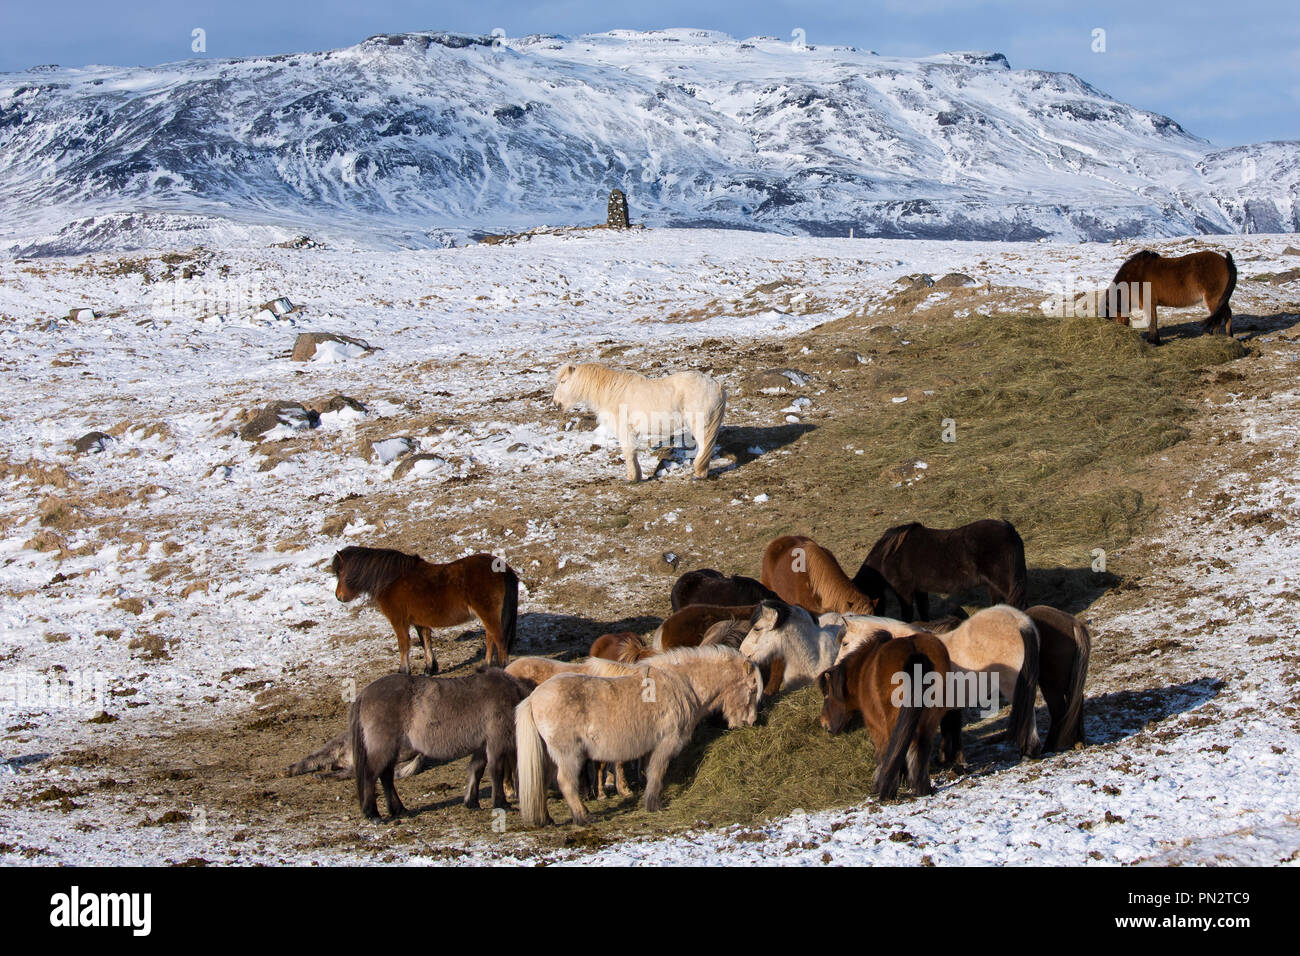 Herd of Icelandic ponies grazing in glacial landscape of South Iceland with Uthlioarhraun mountains behind Stock Photo